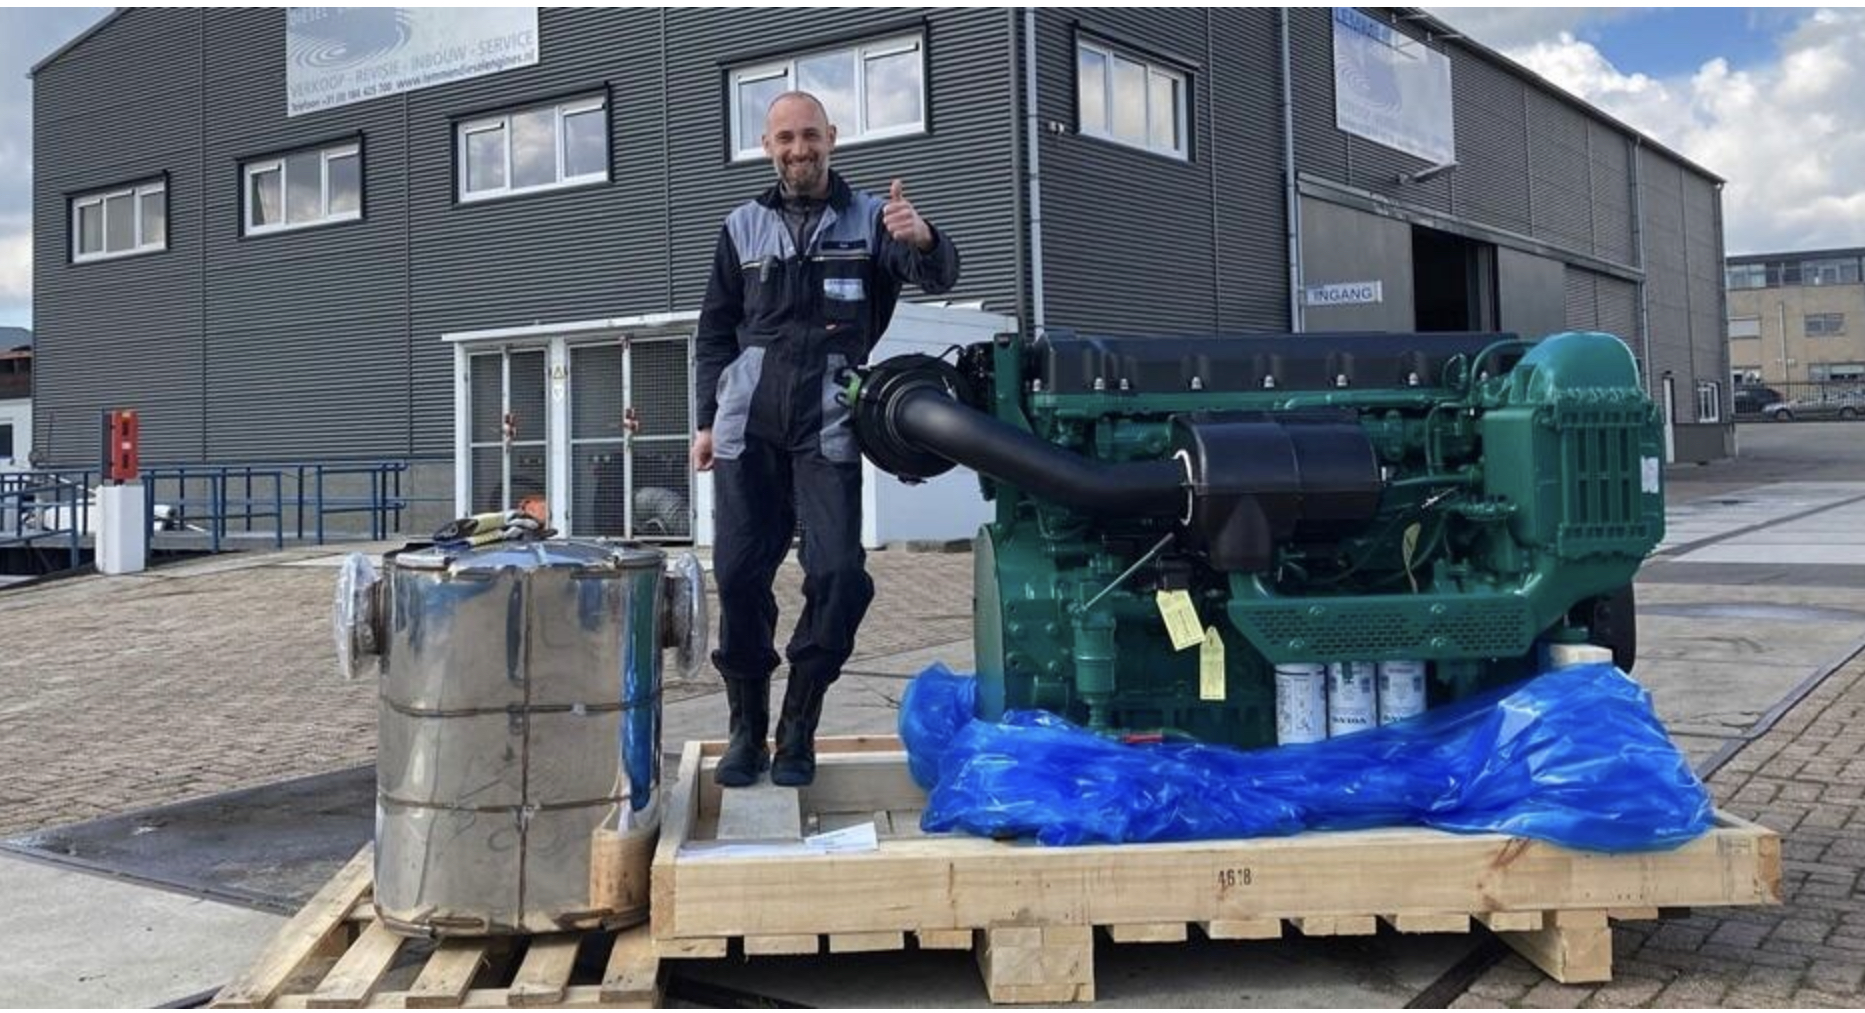 FIRST DELIVERY IN EUROPE: VOLVO PENTA IS NOW TAKING ORDERS ON ITS FULL STAGE V MARINE ENGINE RANGE